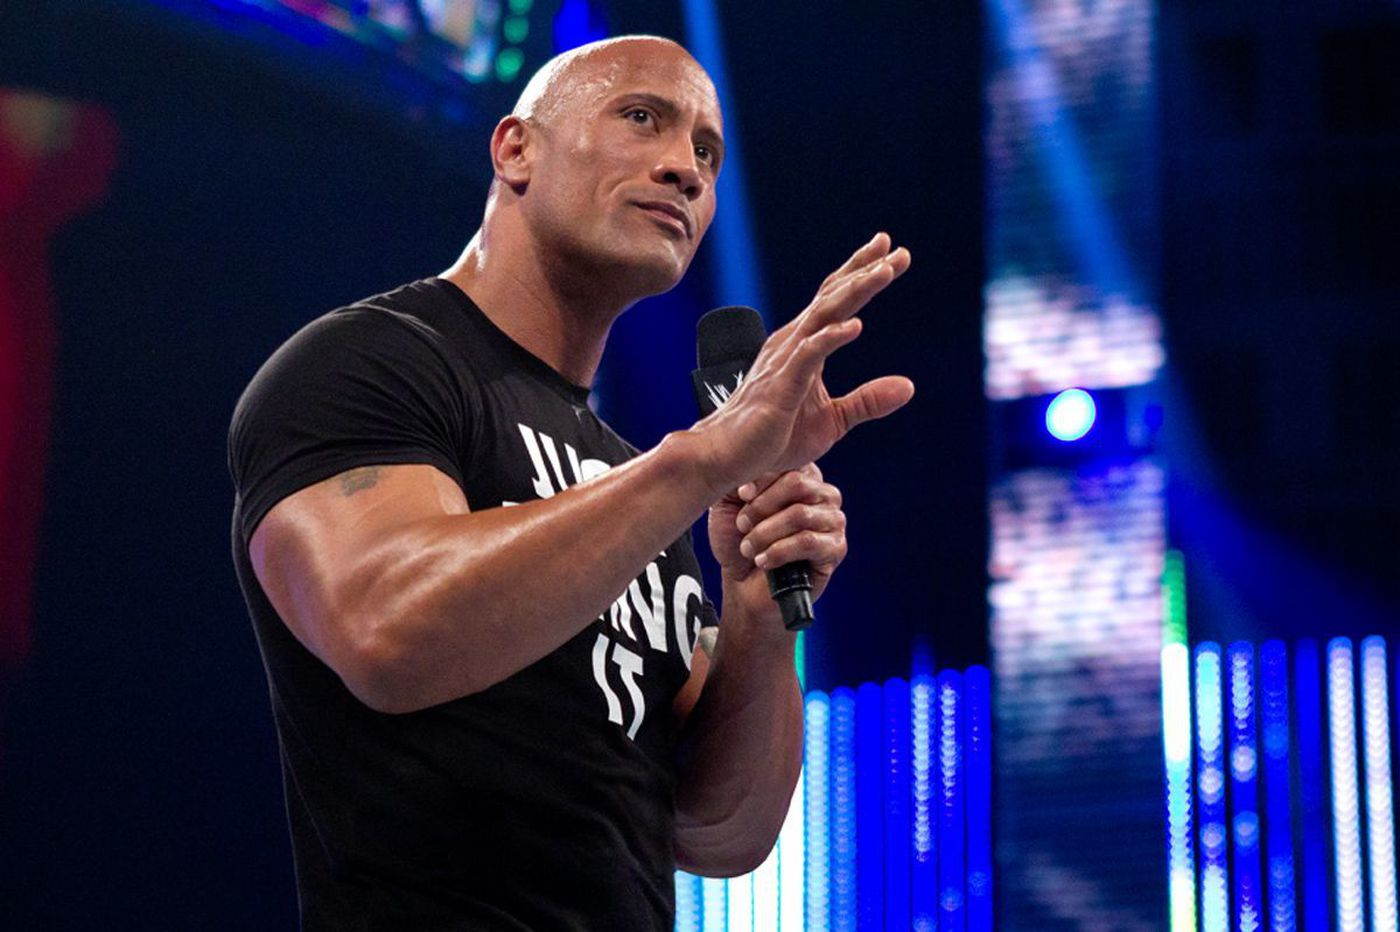 WWE SmackDown: Start time, how to watch and stream Fox premiere